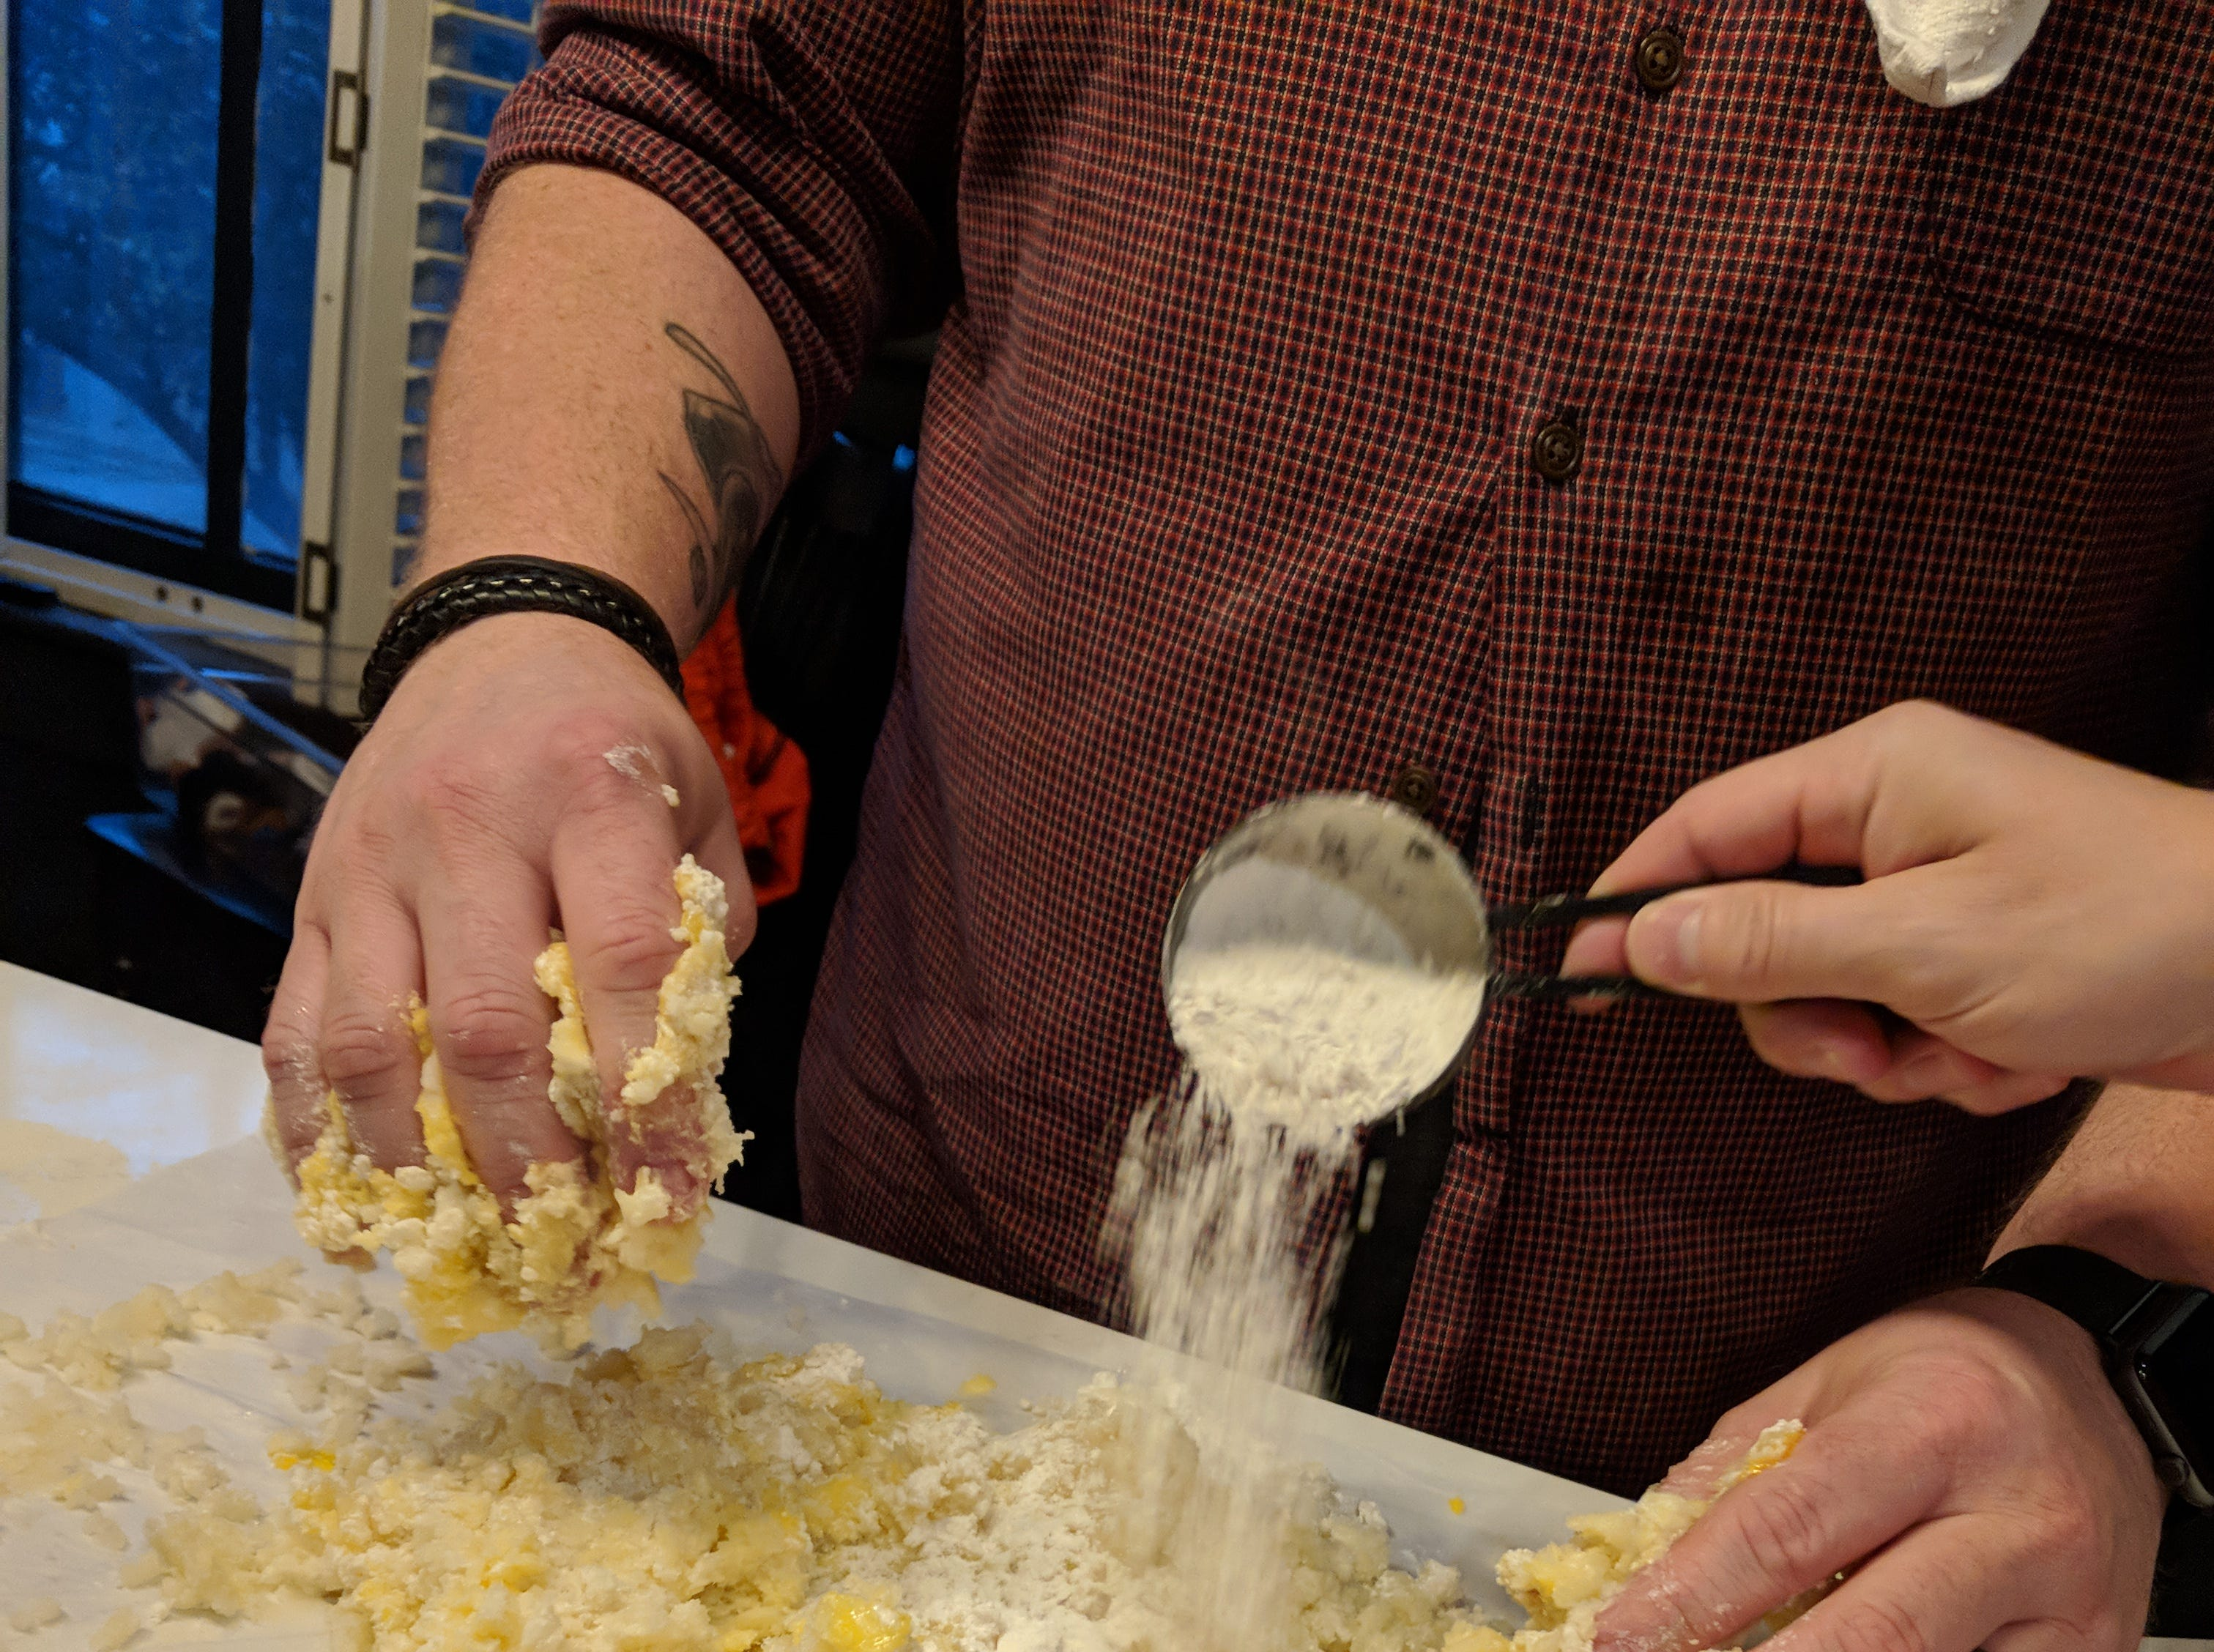 Dallas McGarity, the renowned chef behind The Fat Lamb and Portage House, said it's all about touch when knowing how much flour to add to t he gnocchi dough.